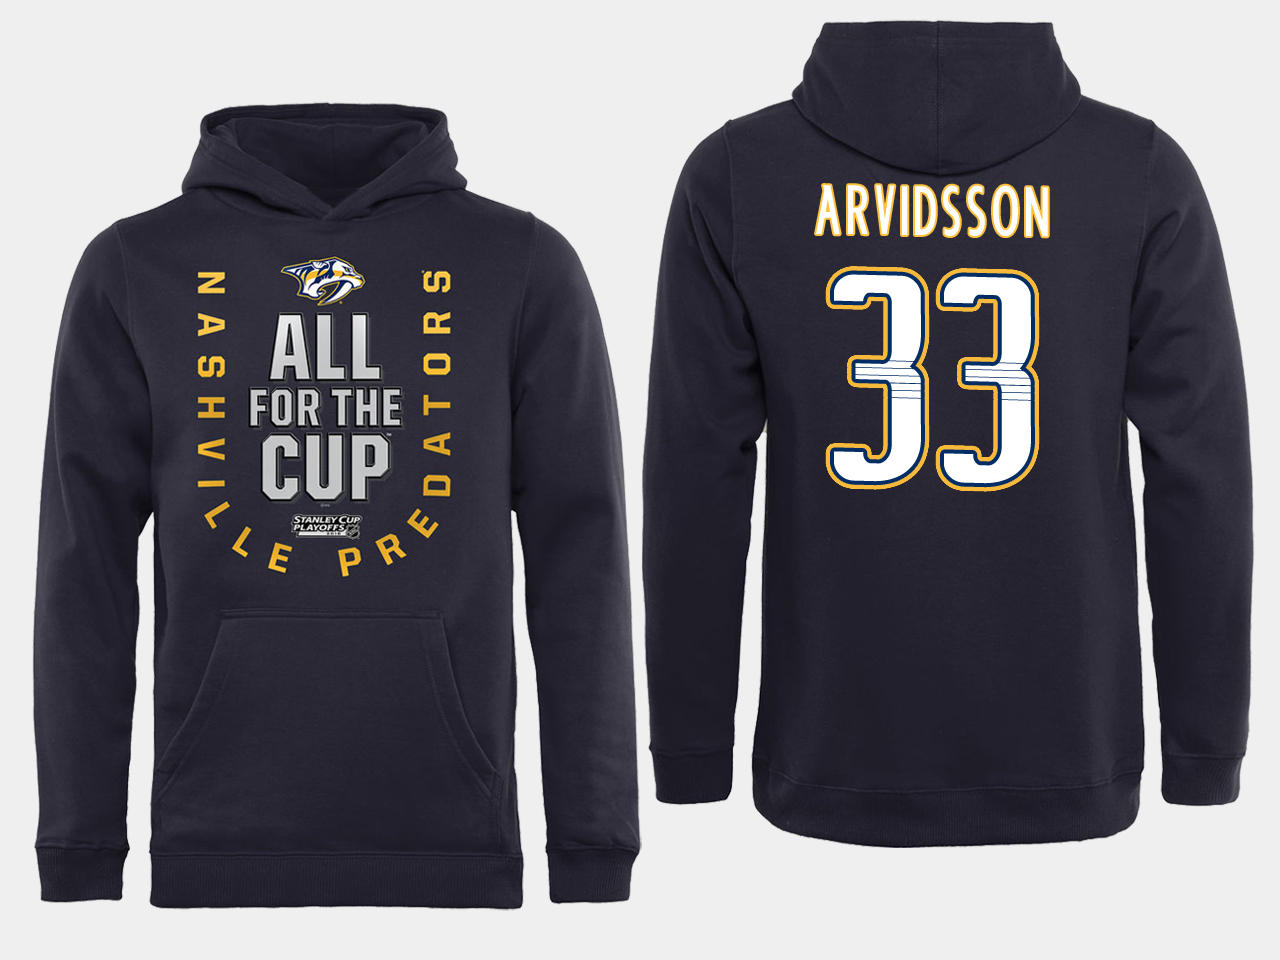 Men NHL Adidas Nashville Predators 33 Arvidsson black ALL for the Cup hoodie